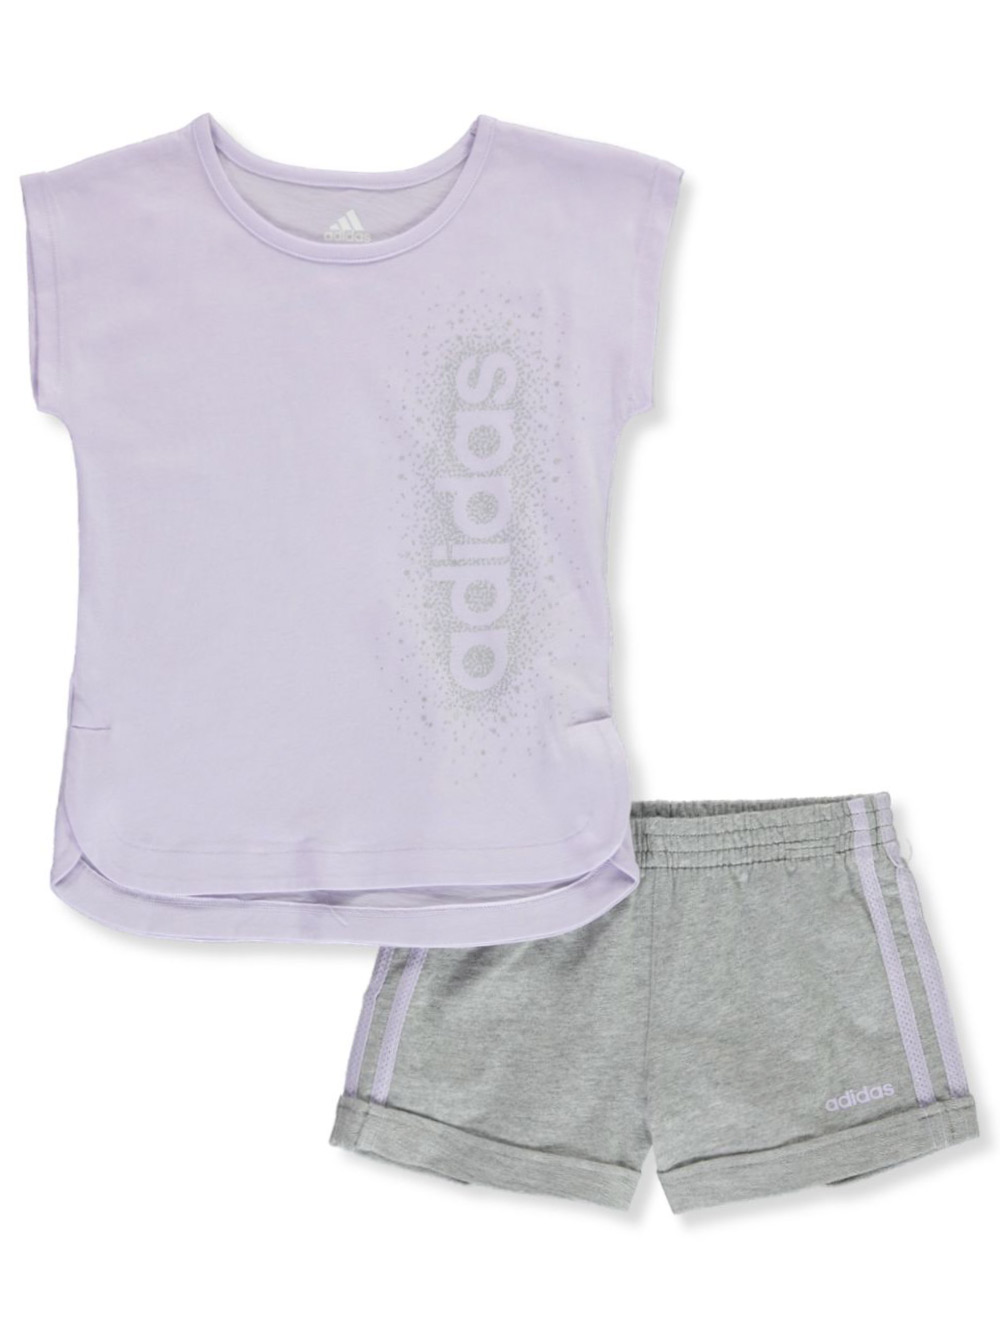 Size 6x Short Sets for Girls